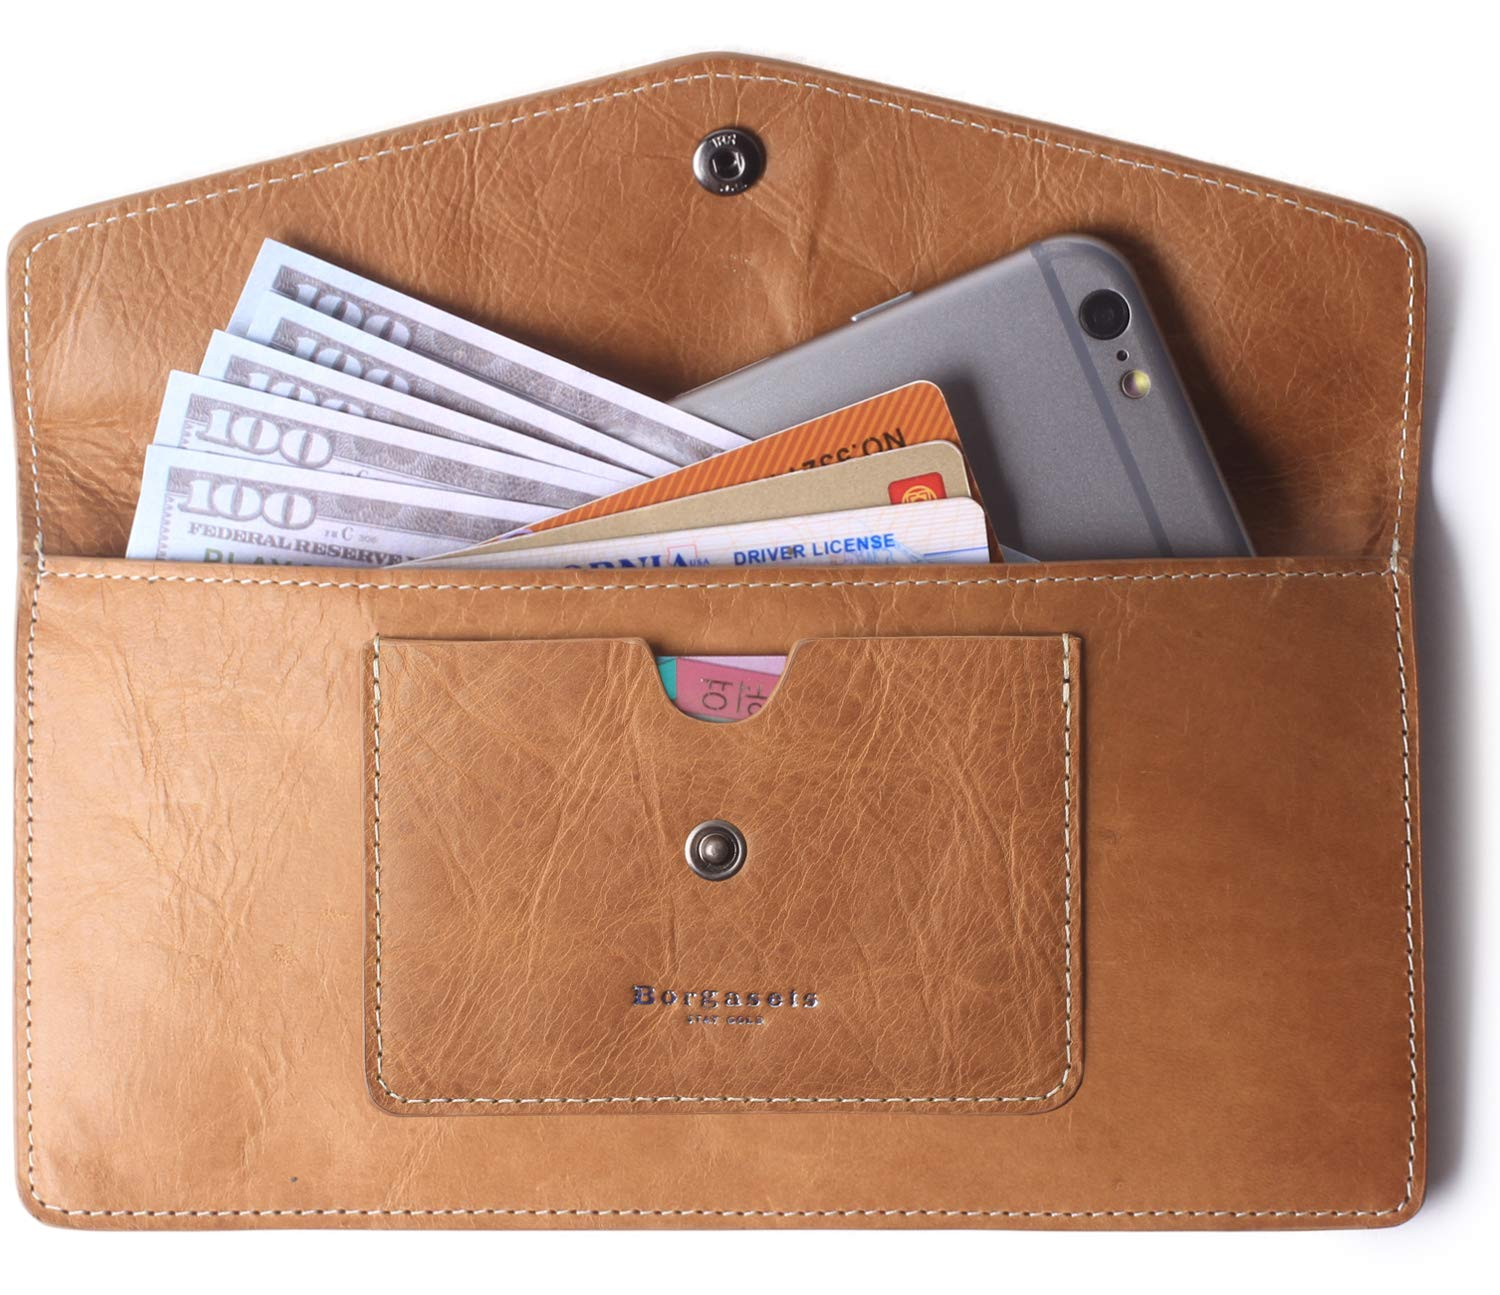 2e0668bd8798 Borgasets Women's Wallet Leather RFID Blocking Ultra thin Envelope Ladies  Purse Travel Clutch with ID Card Holder and Phone Pocket Brown